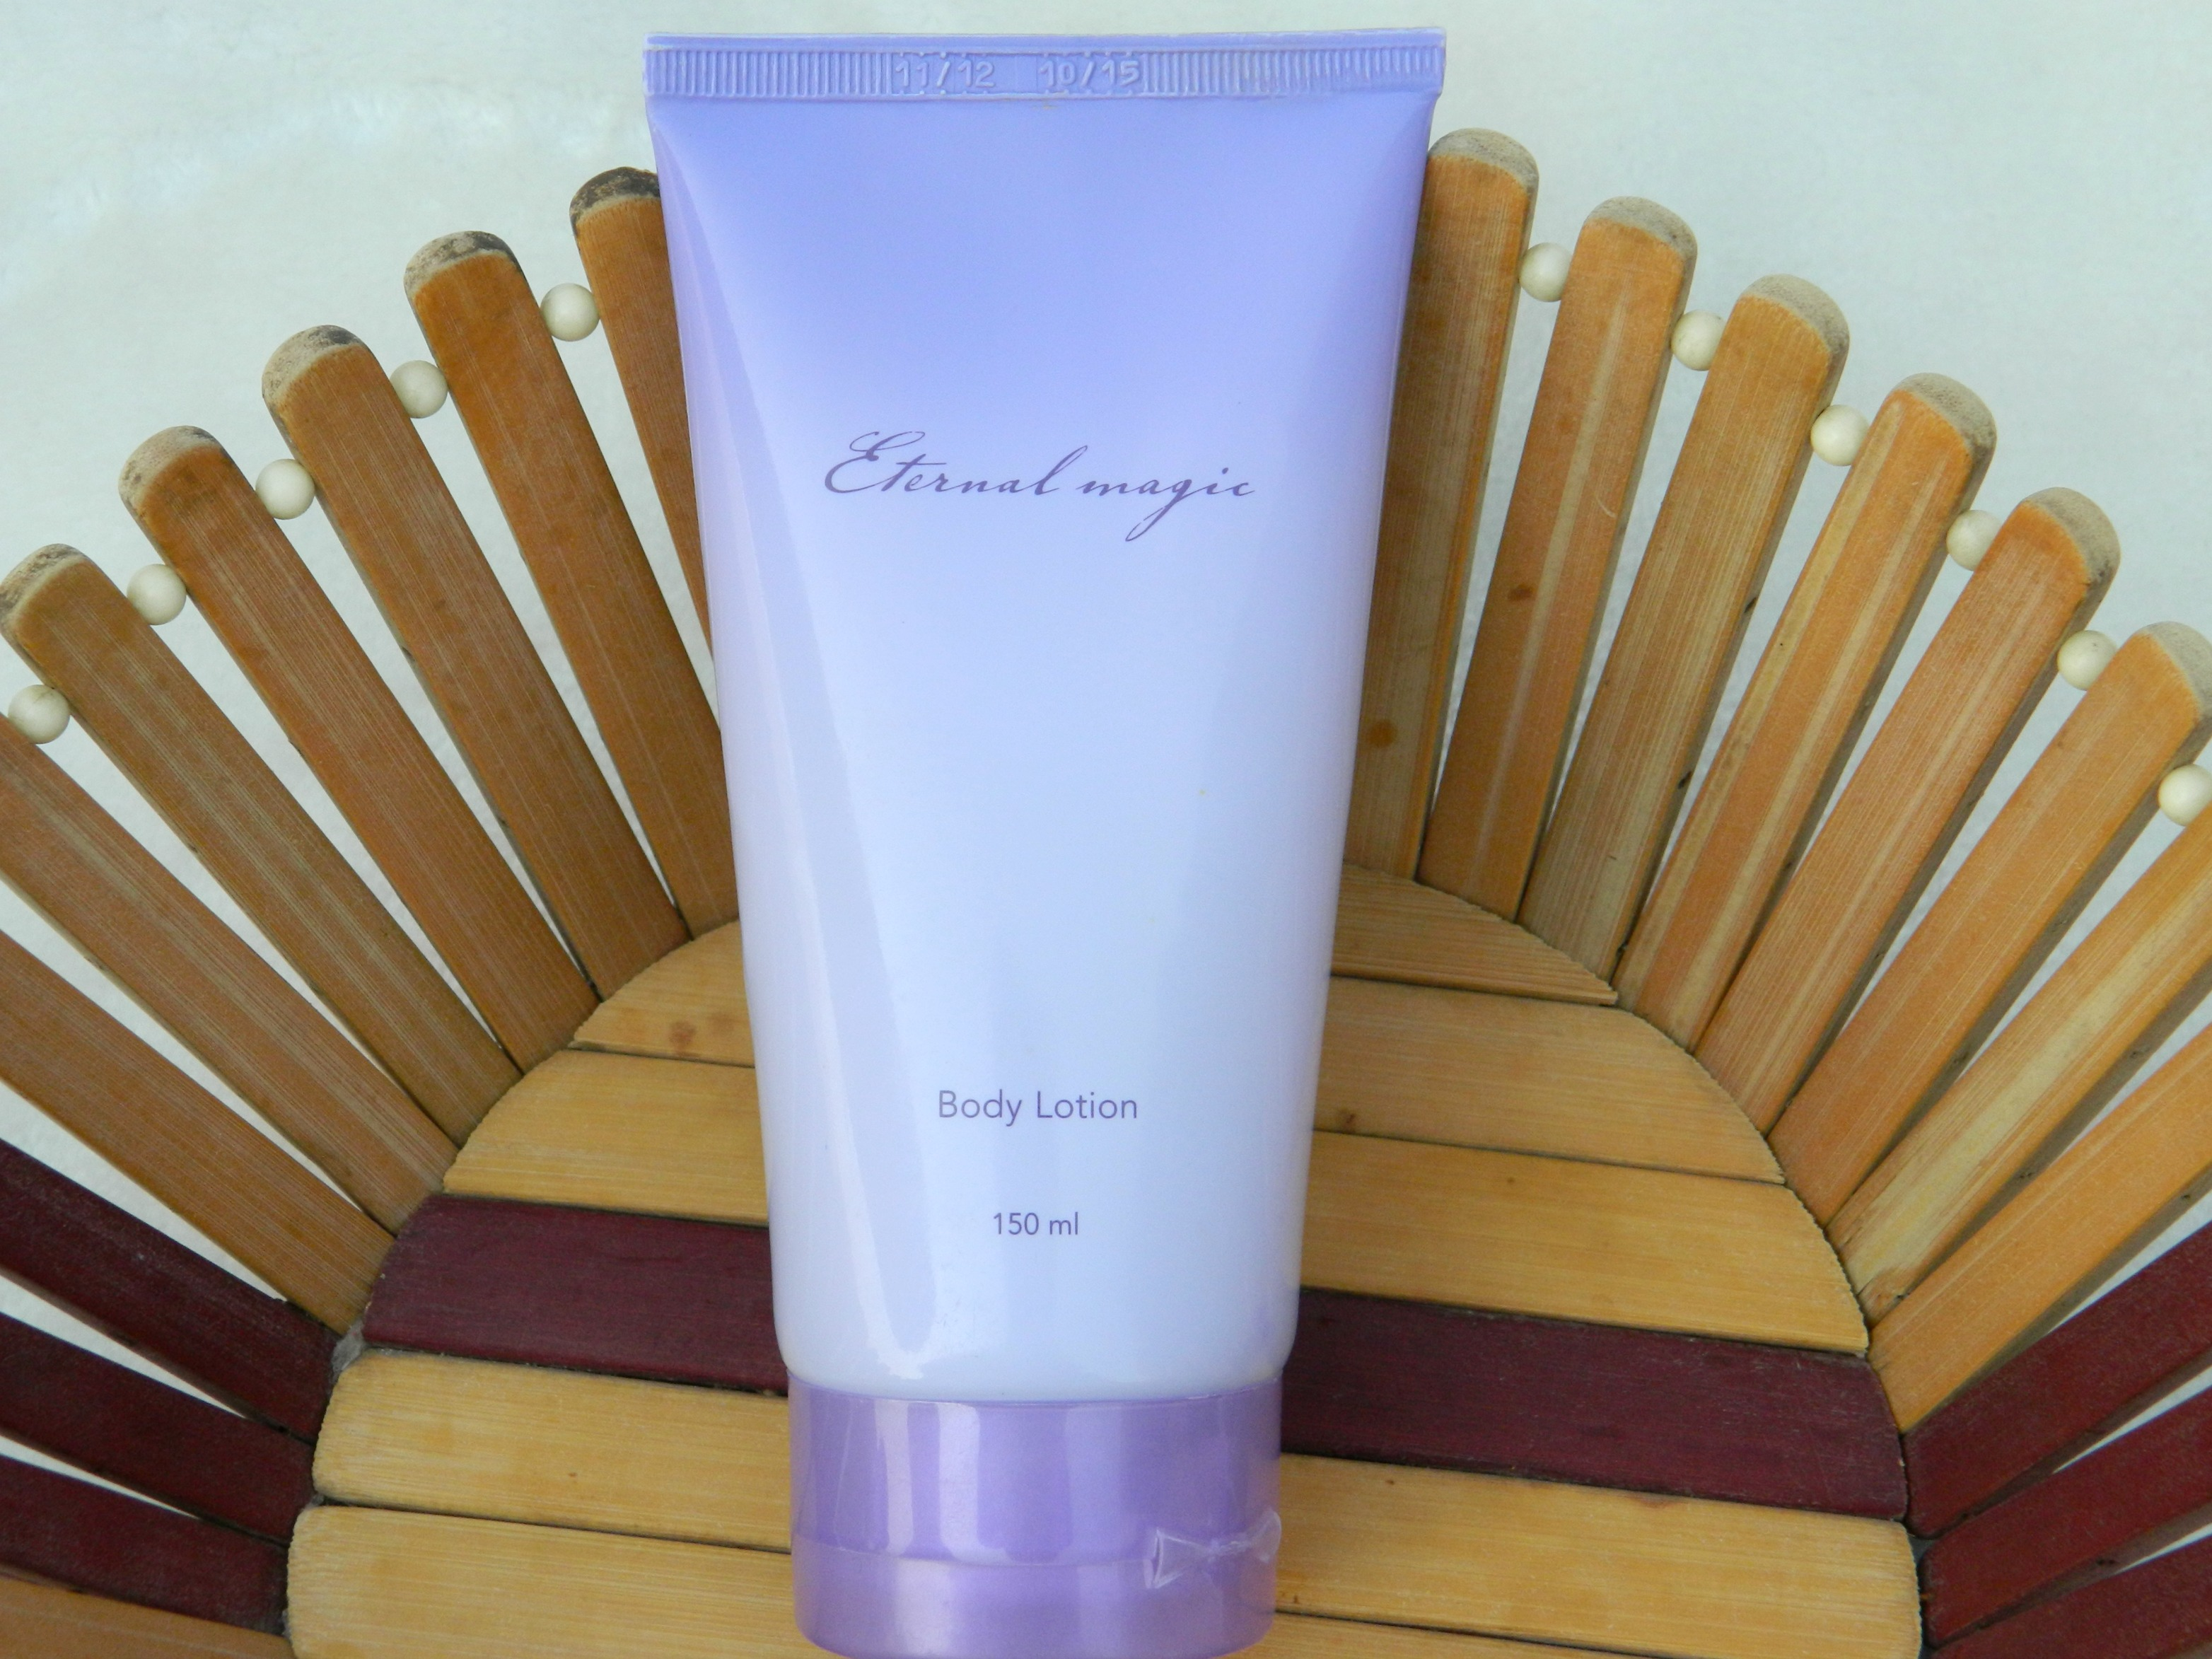 Avon Eternal Magic Body Lotion